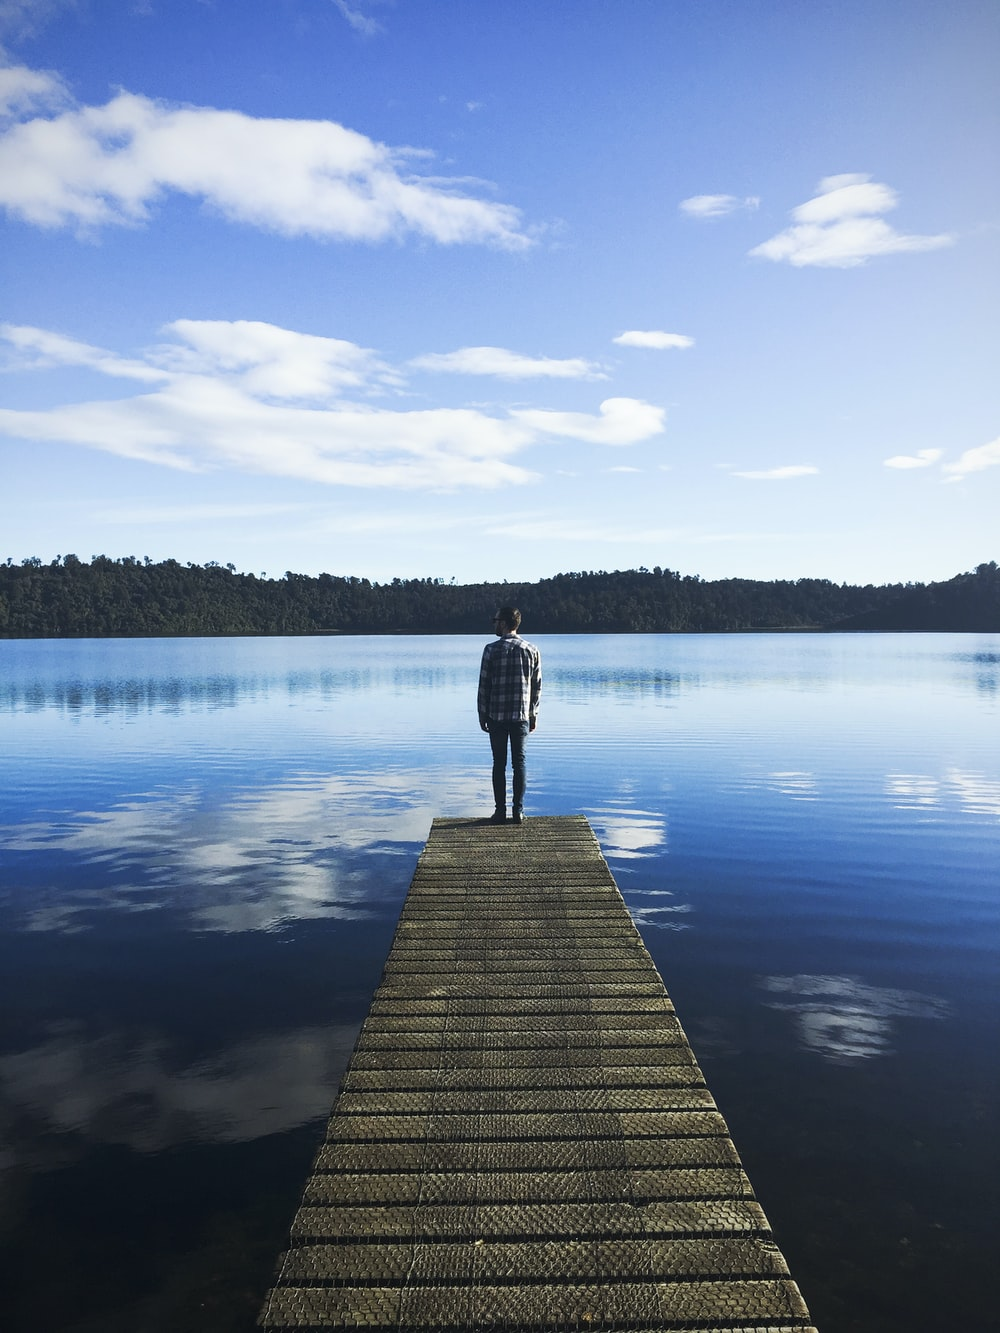 man standing on lake dock watching water under blue sky during daytime